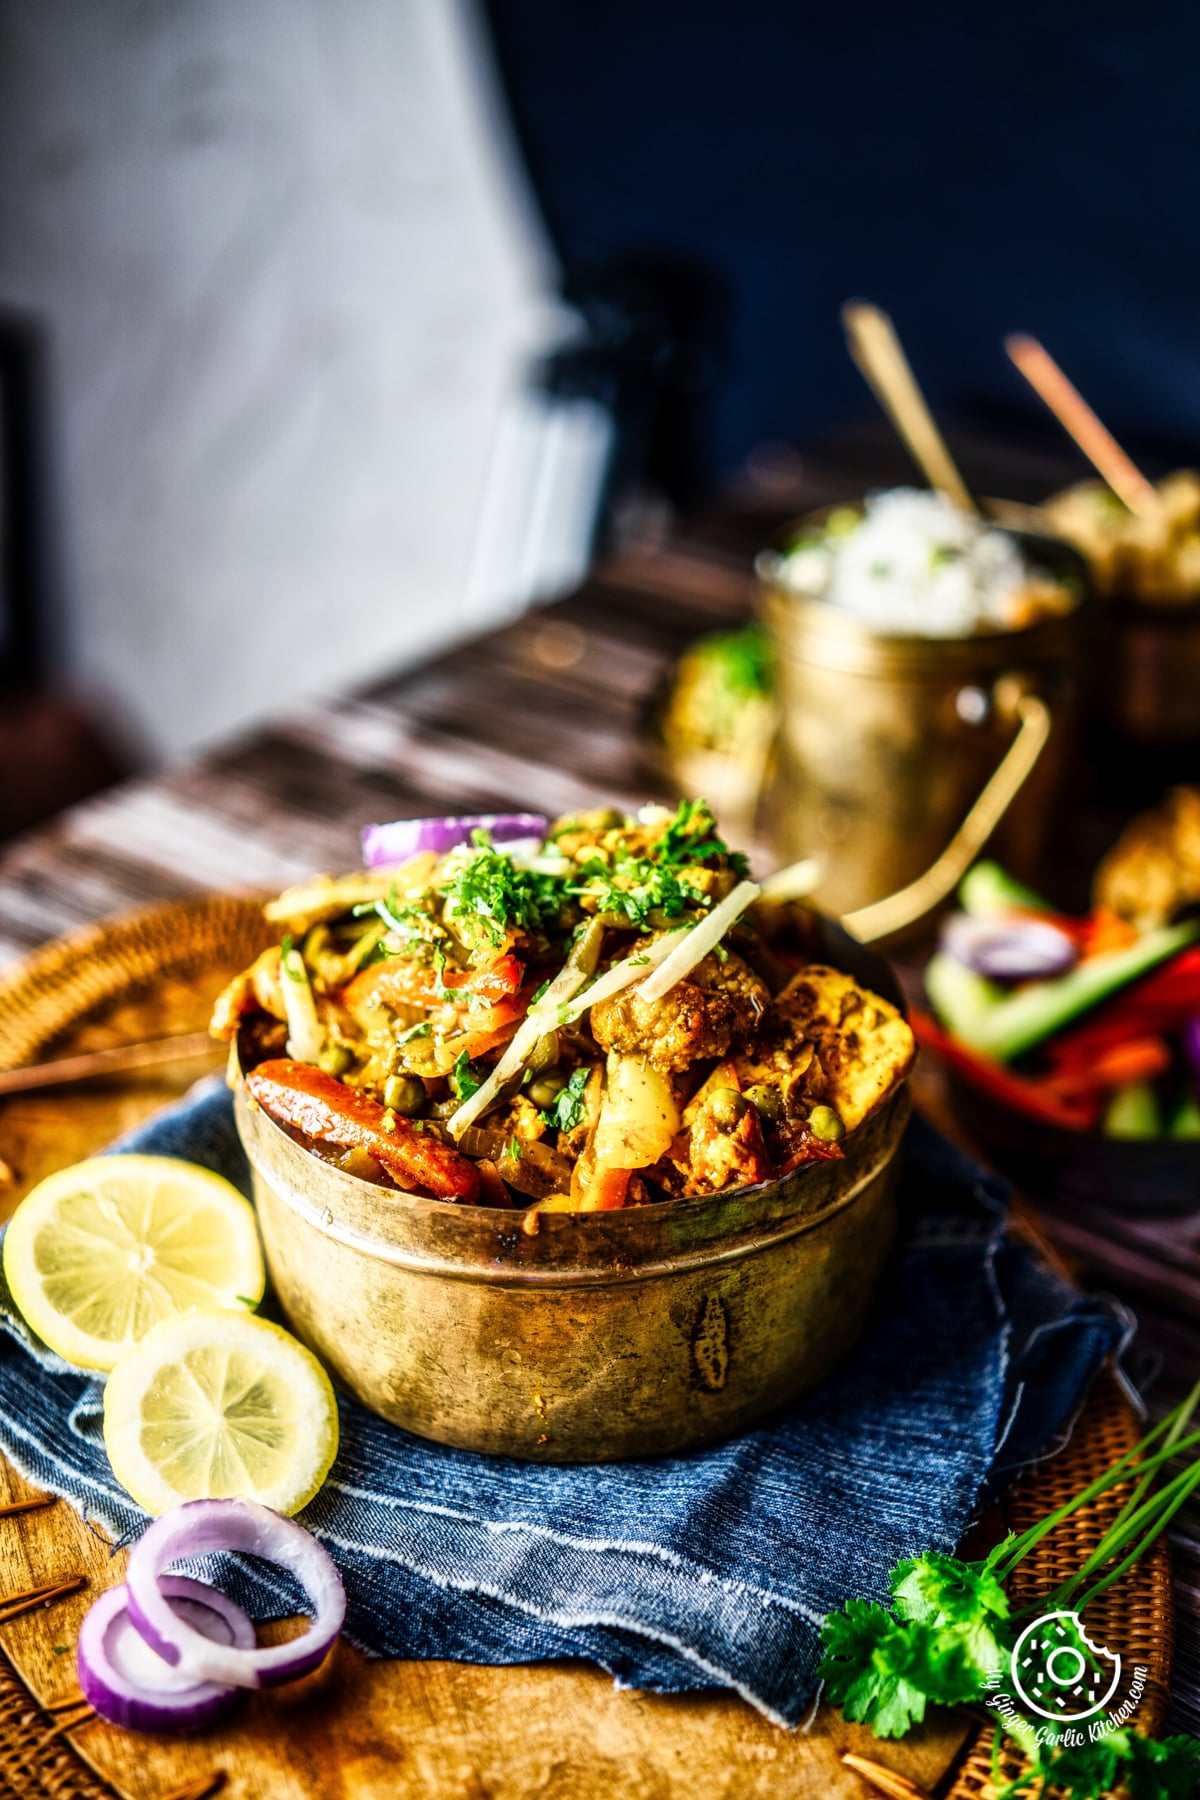 vegetable jalfrezi served in a brass bowl with lemon slices on the side